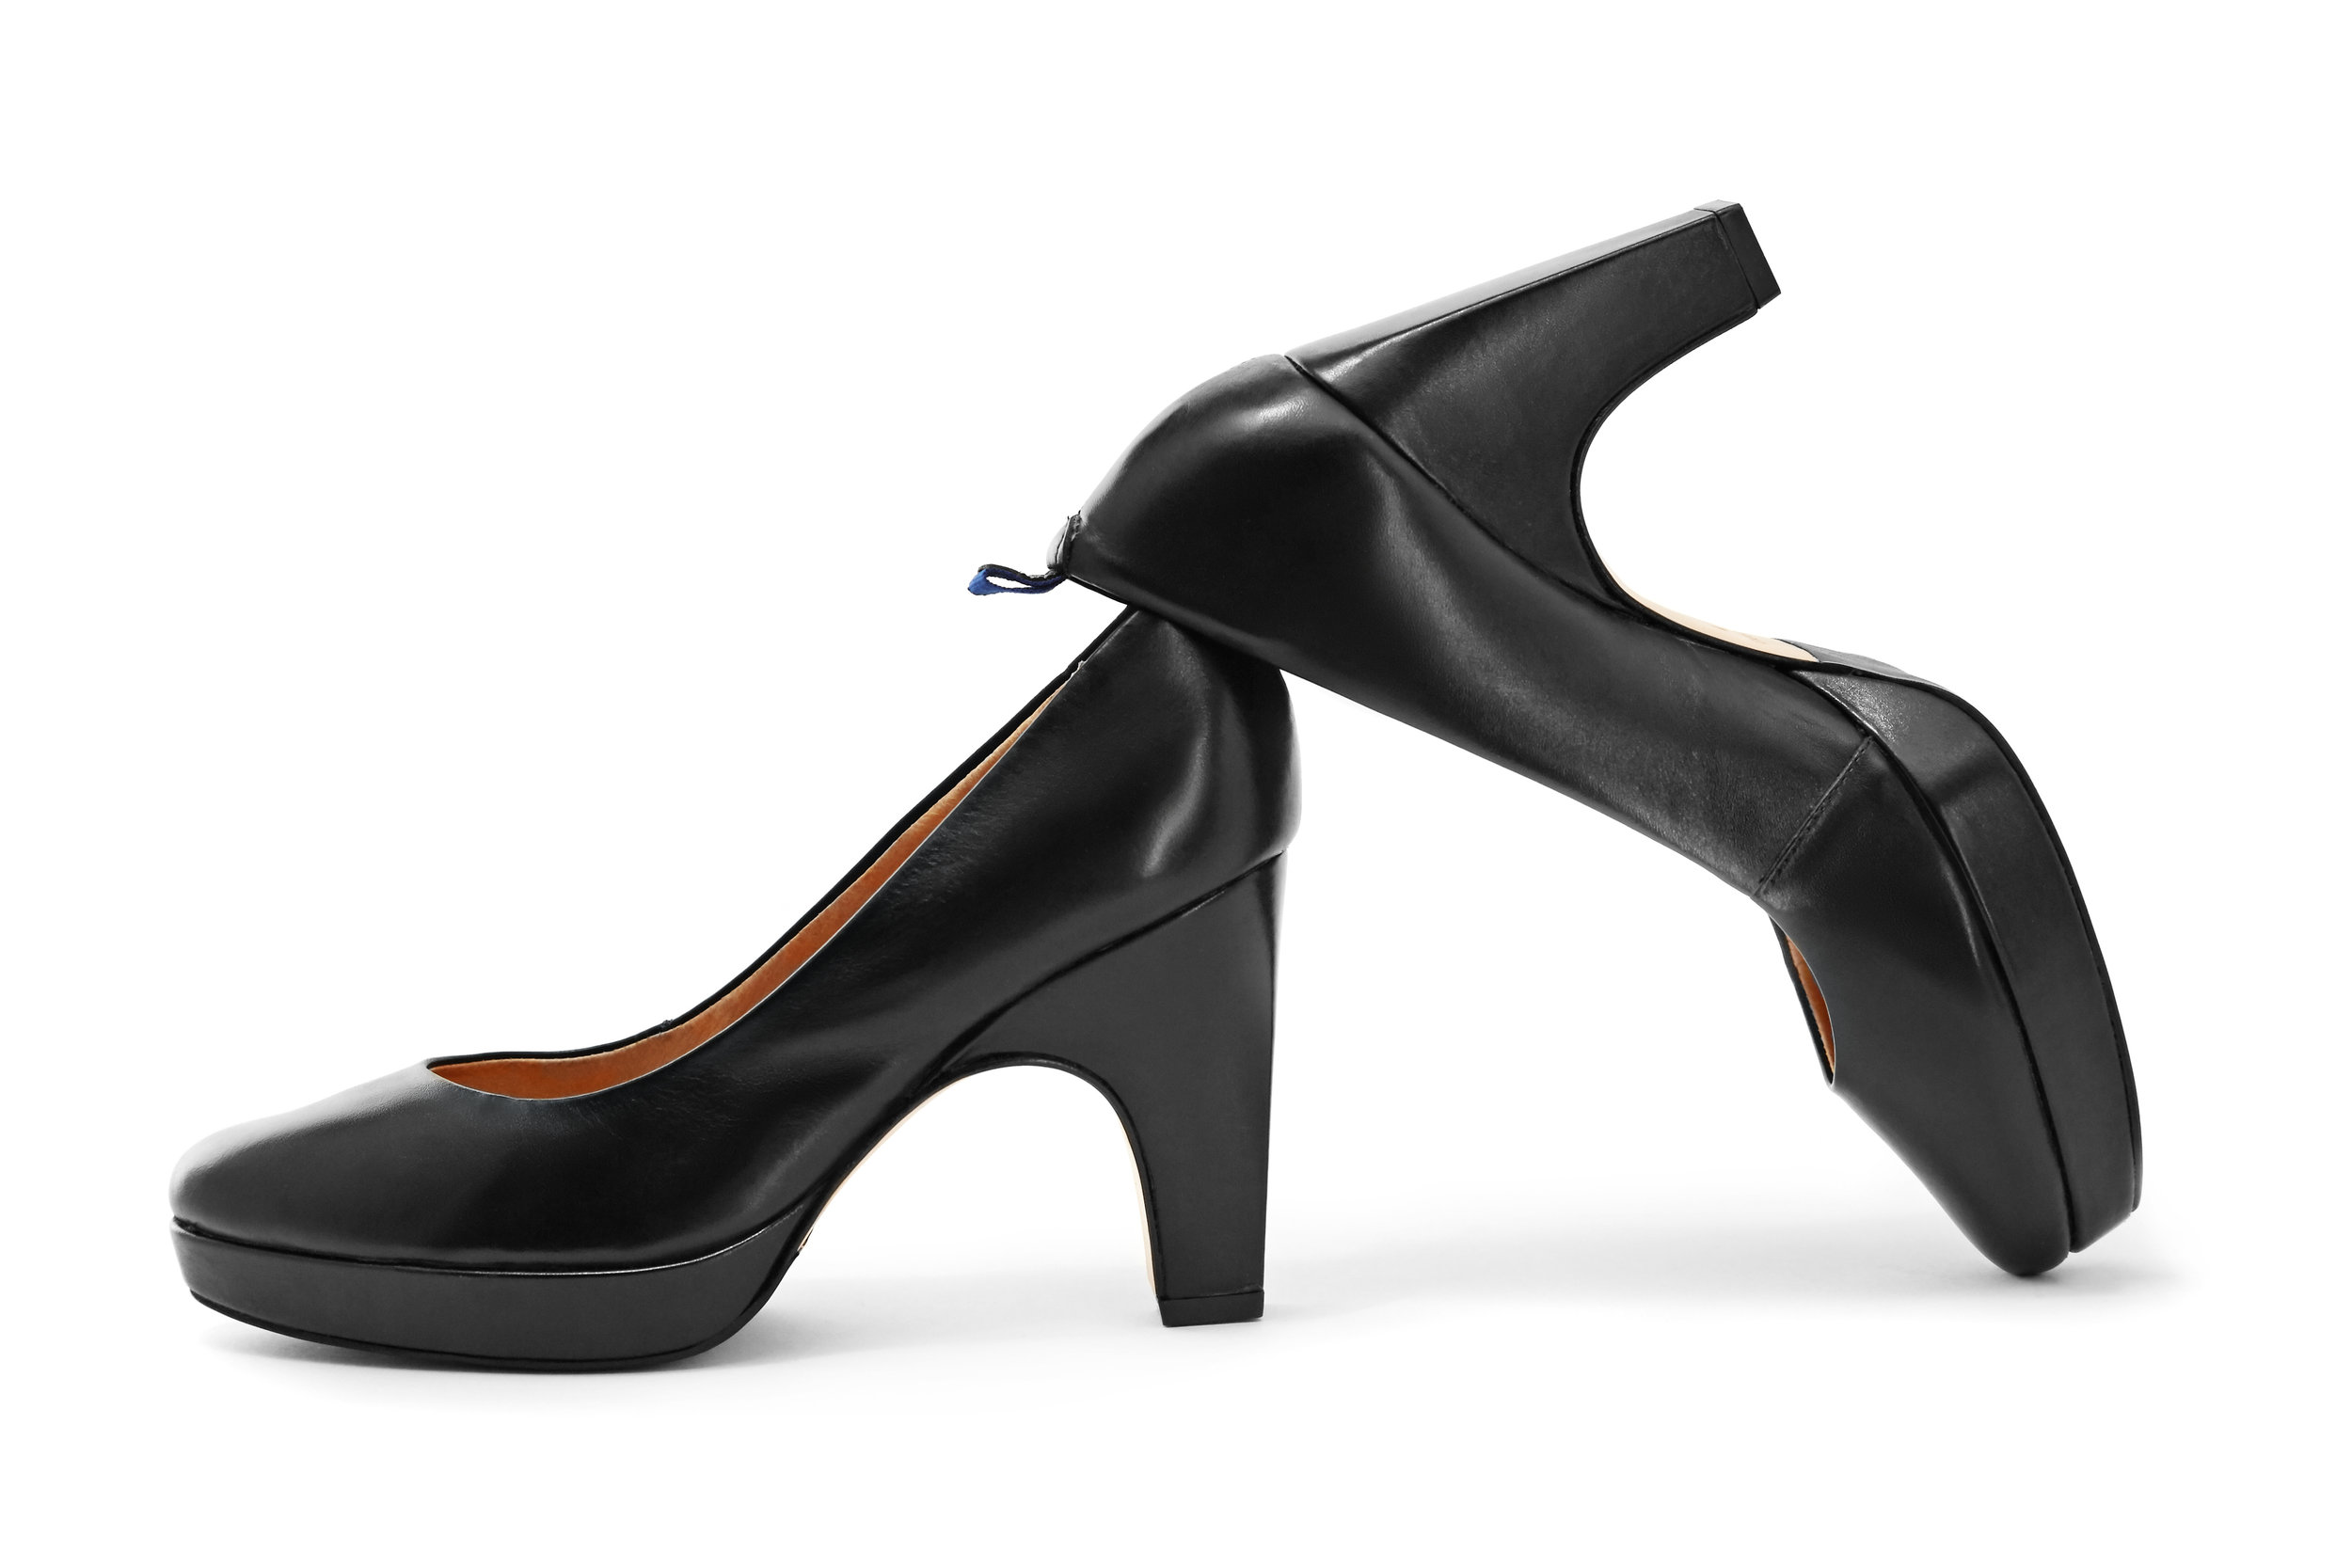 TheDrLizaShoe_PRODUCT_FINAL 005.jpg